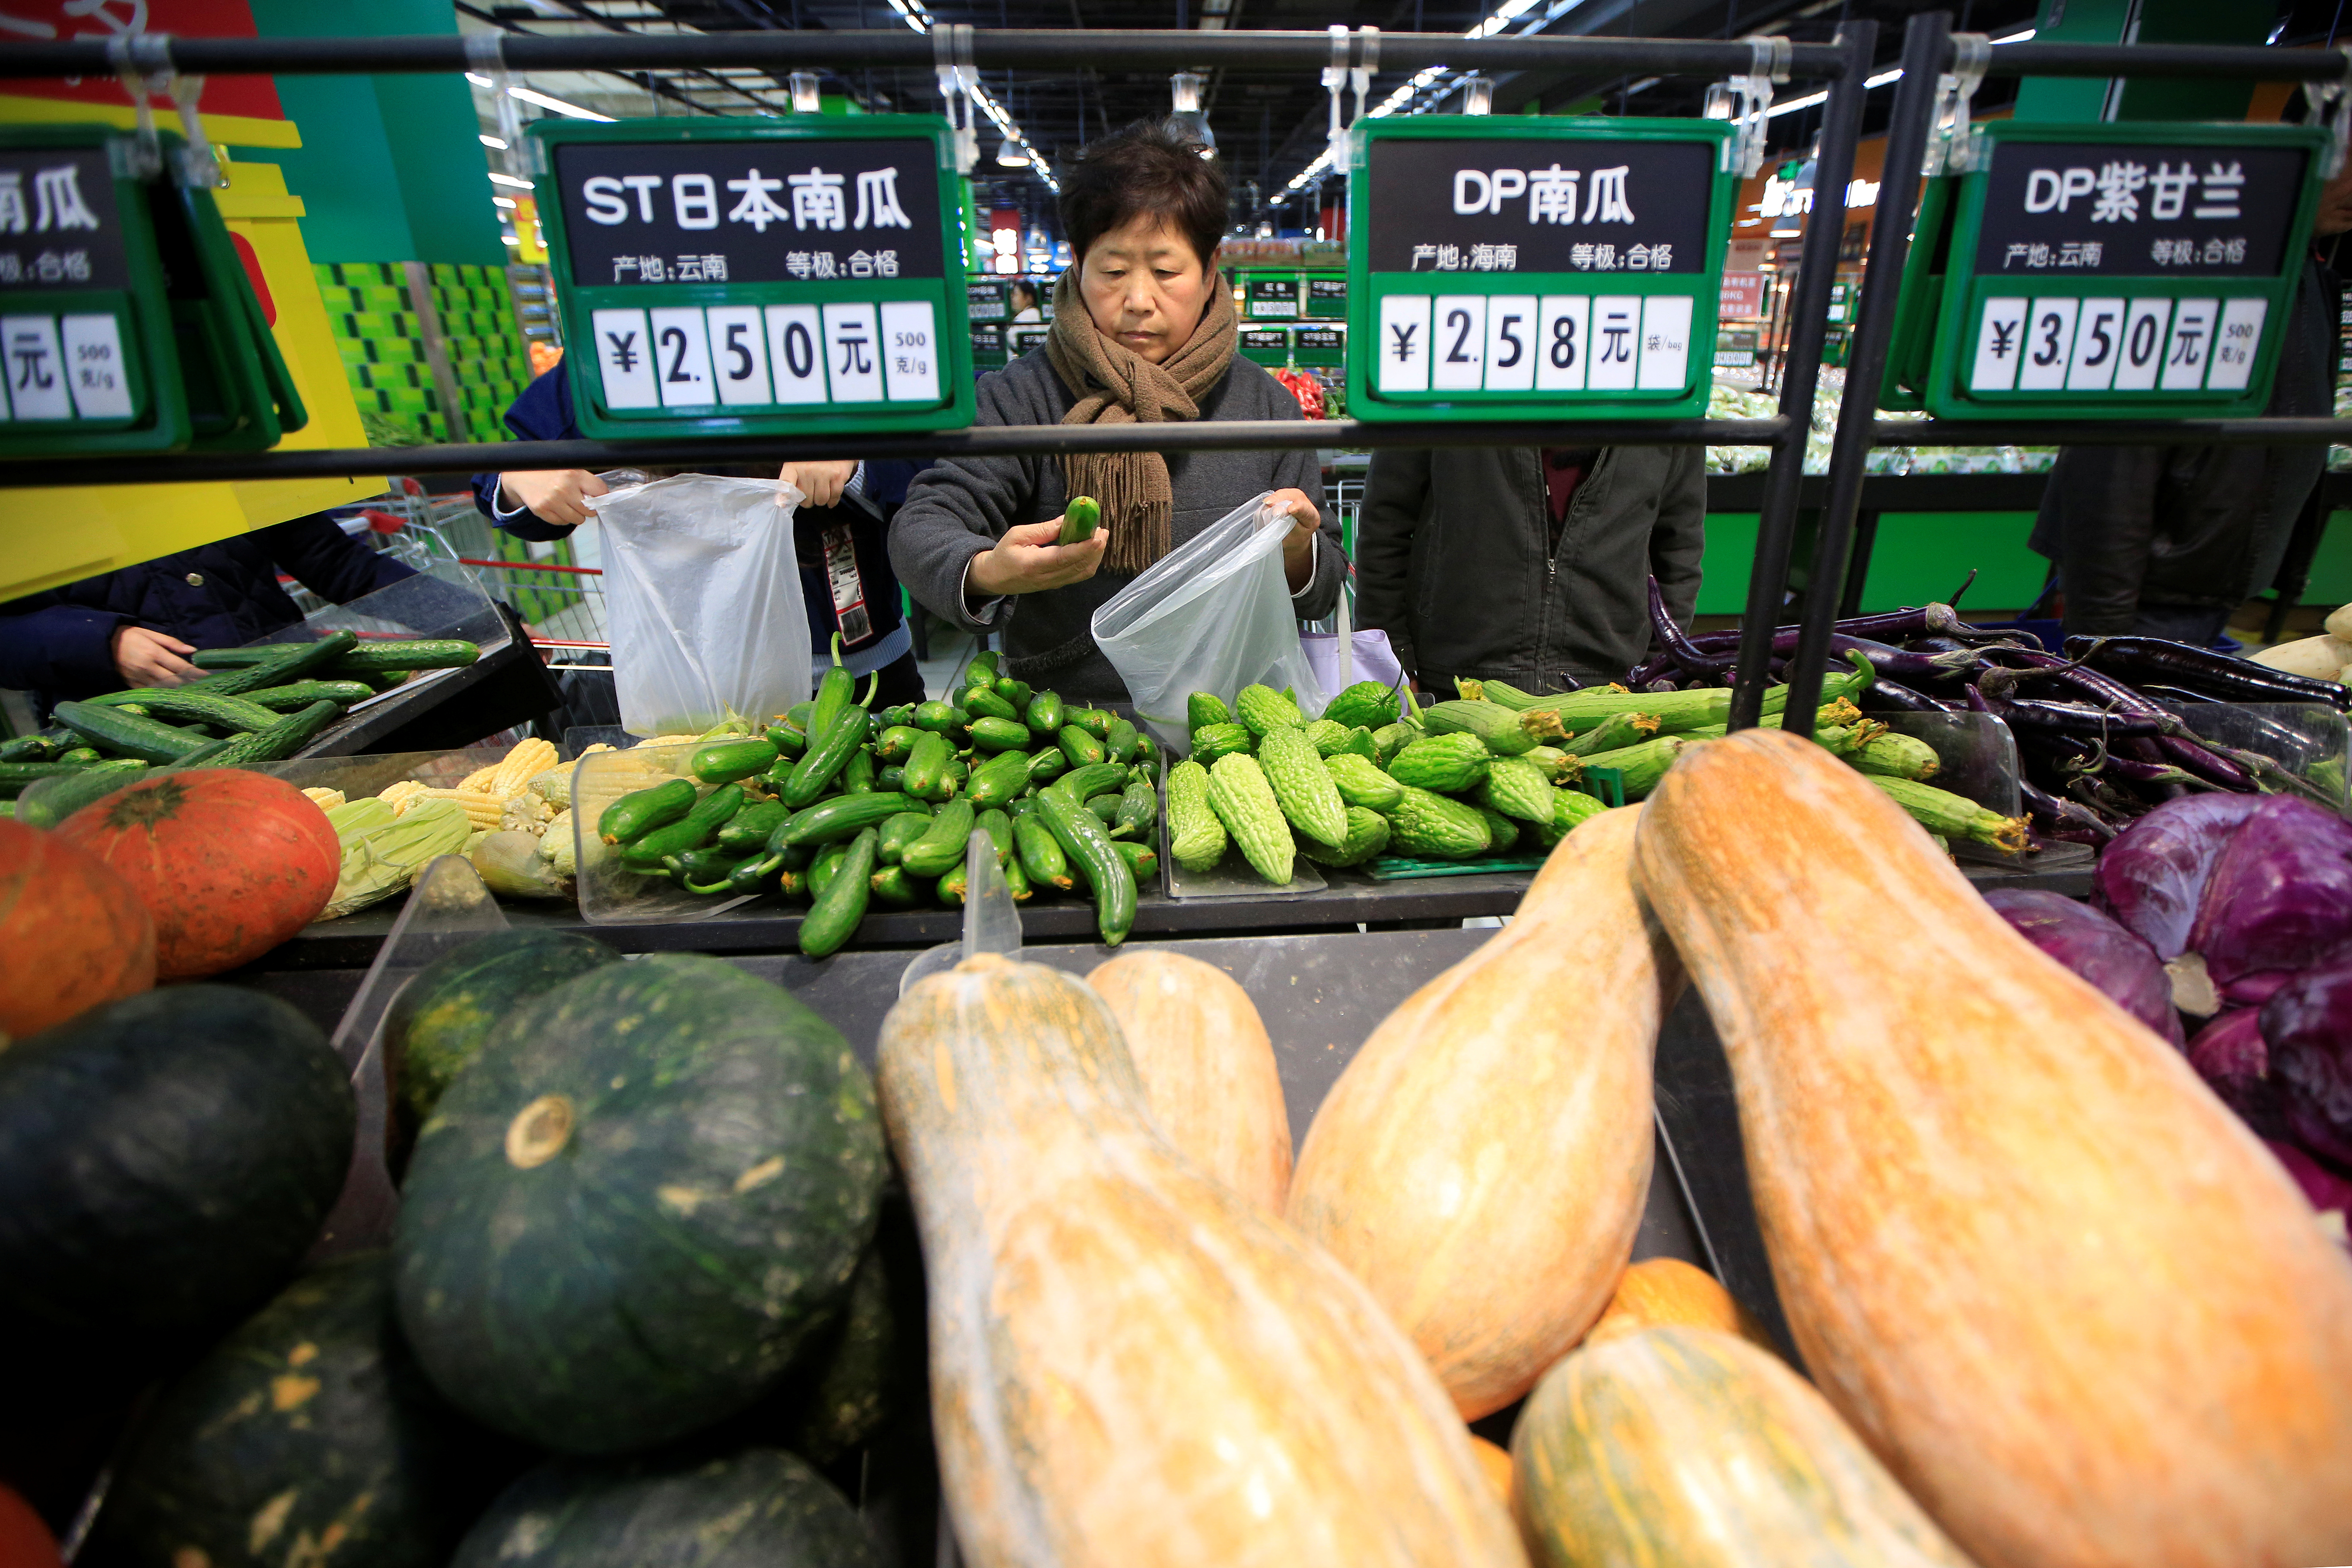 Consumers choose vegetables at a supermarket in Shanghai